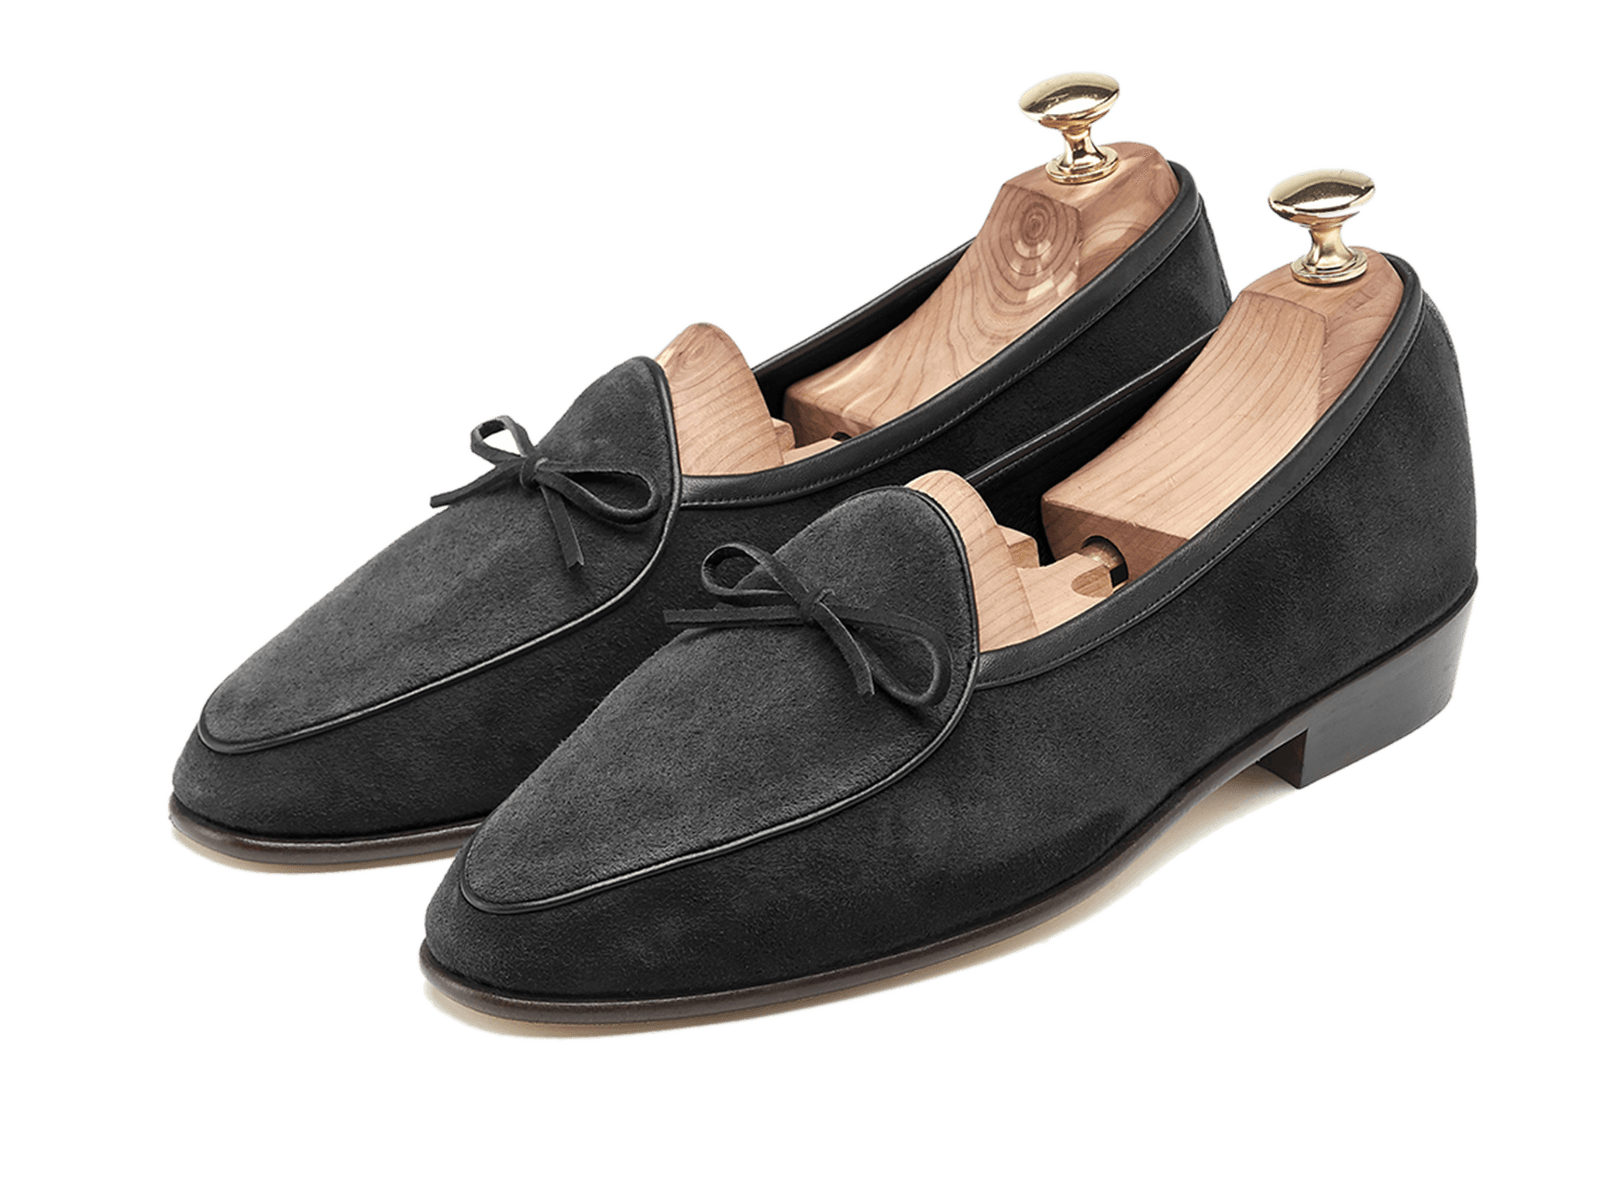 Sagan Classic String in Obsidian Black Suede